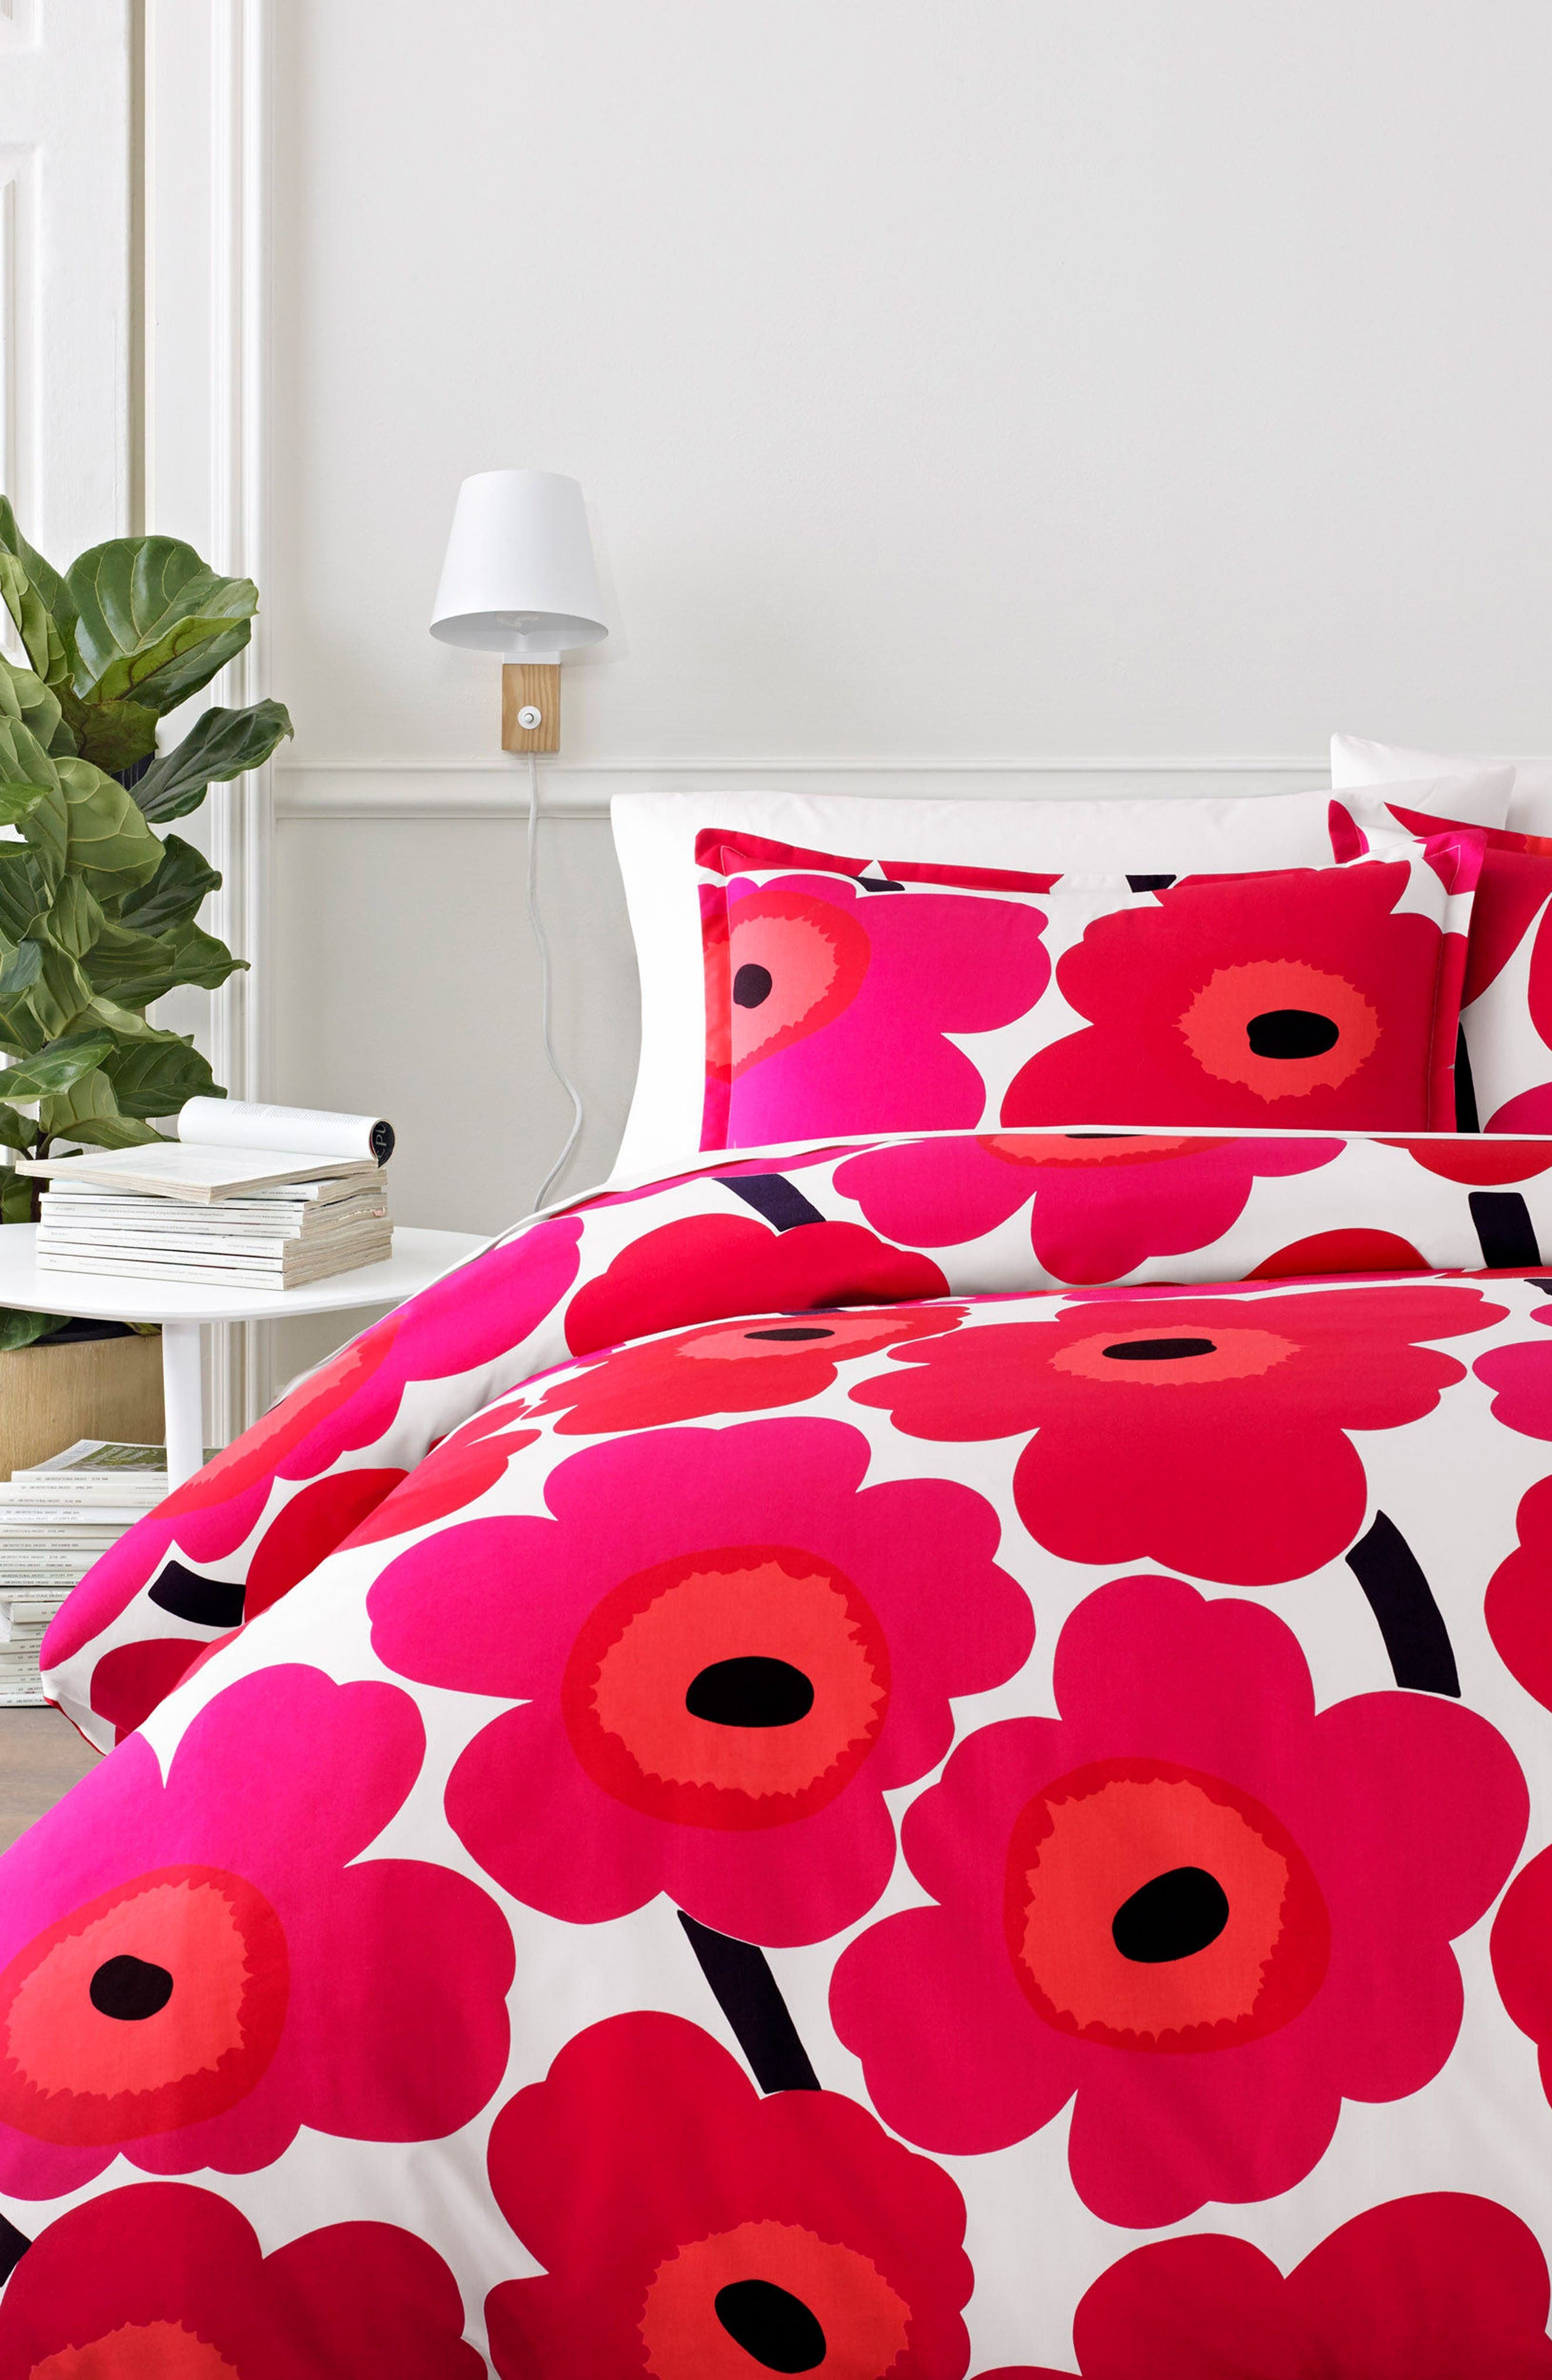 Bedding Sets & Bedding Collections | Nordstrom